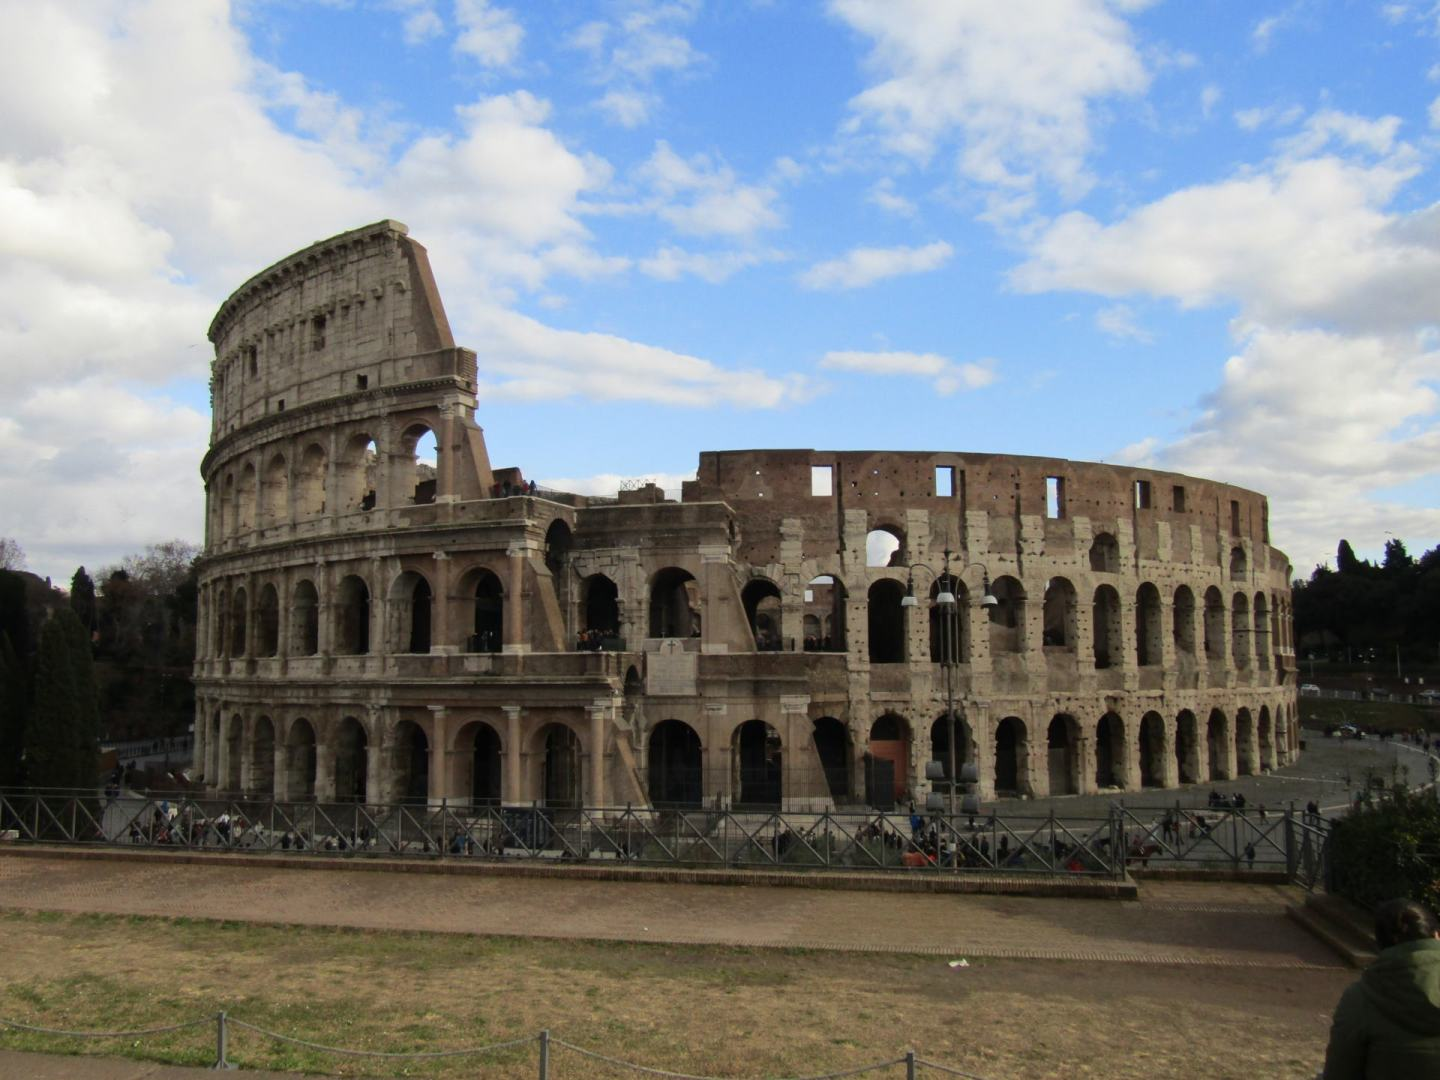 Planning A Trip To Rome – Some Essential Tips